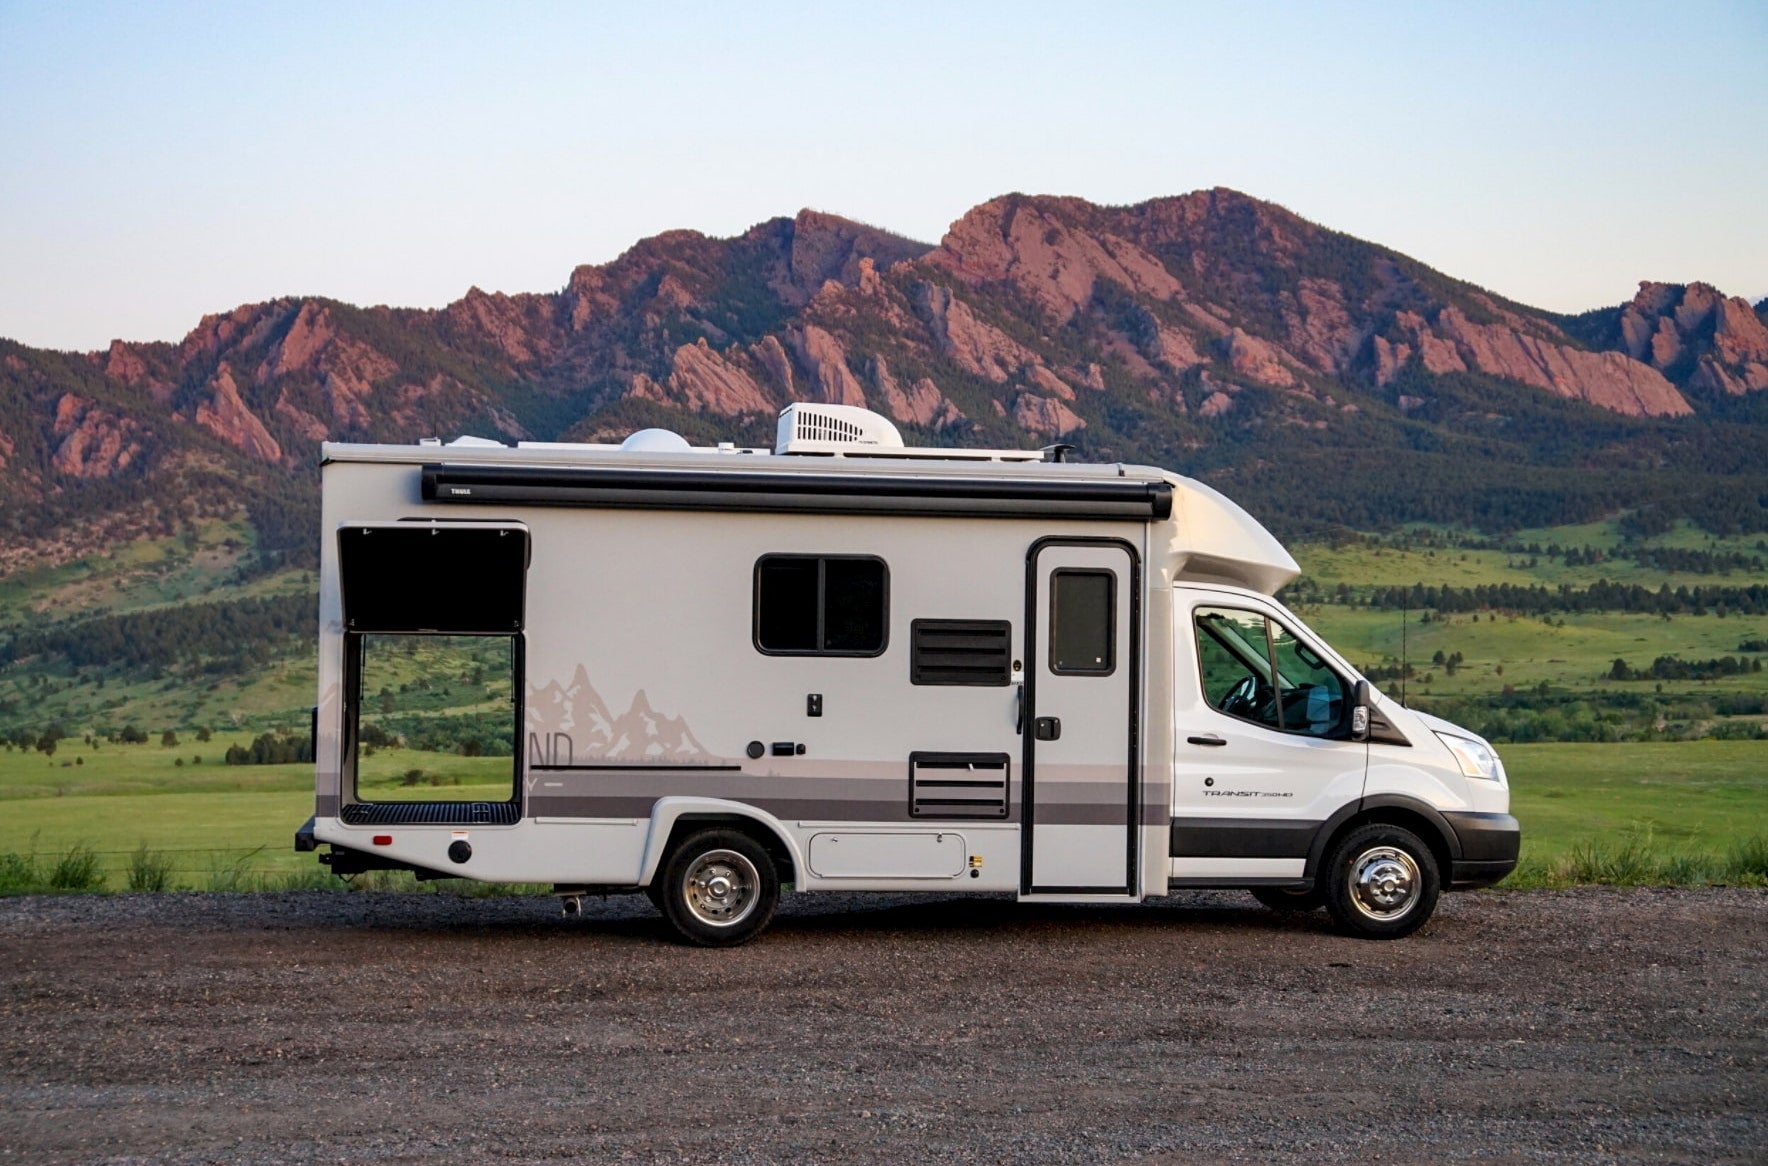 Compact RV rental in the mountains.